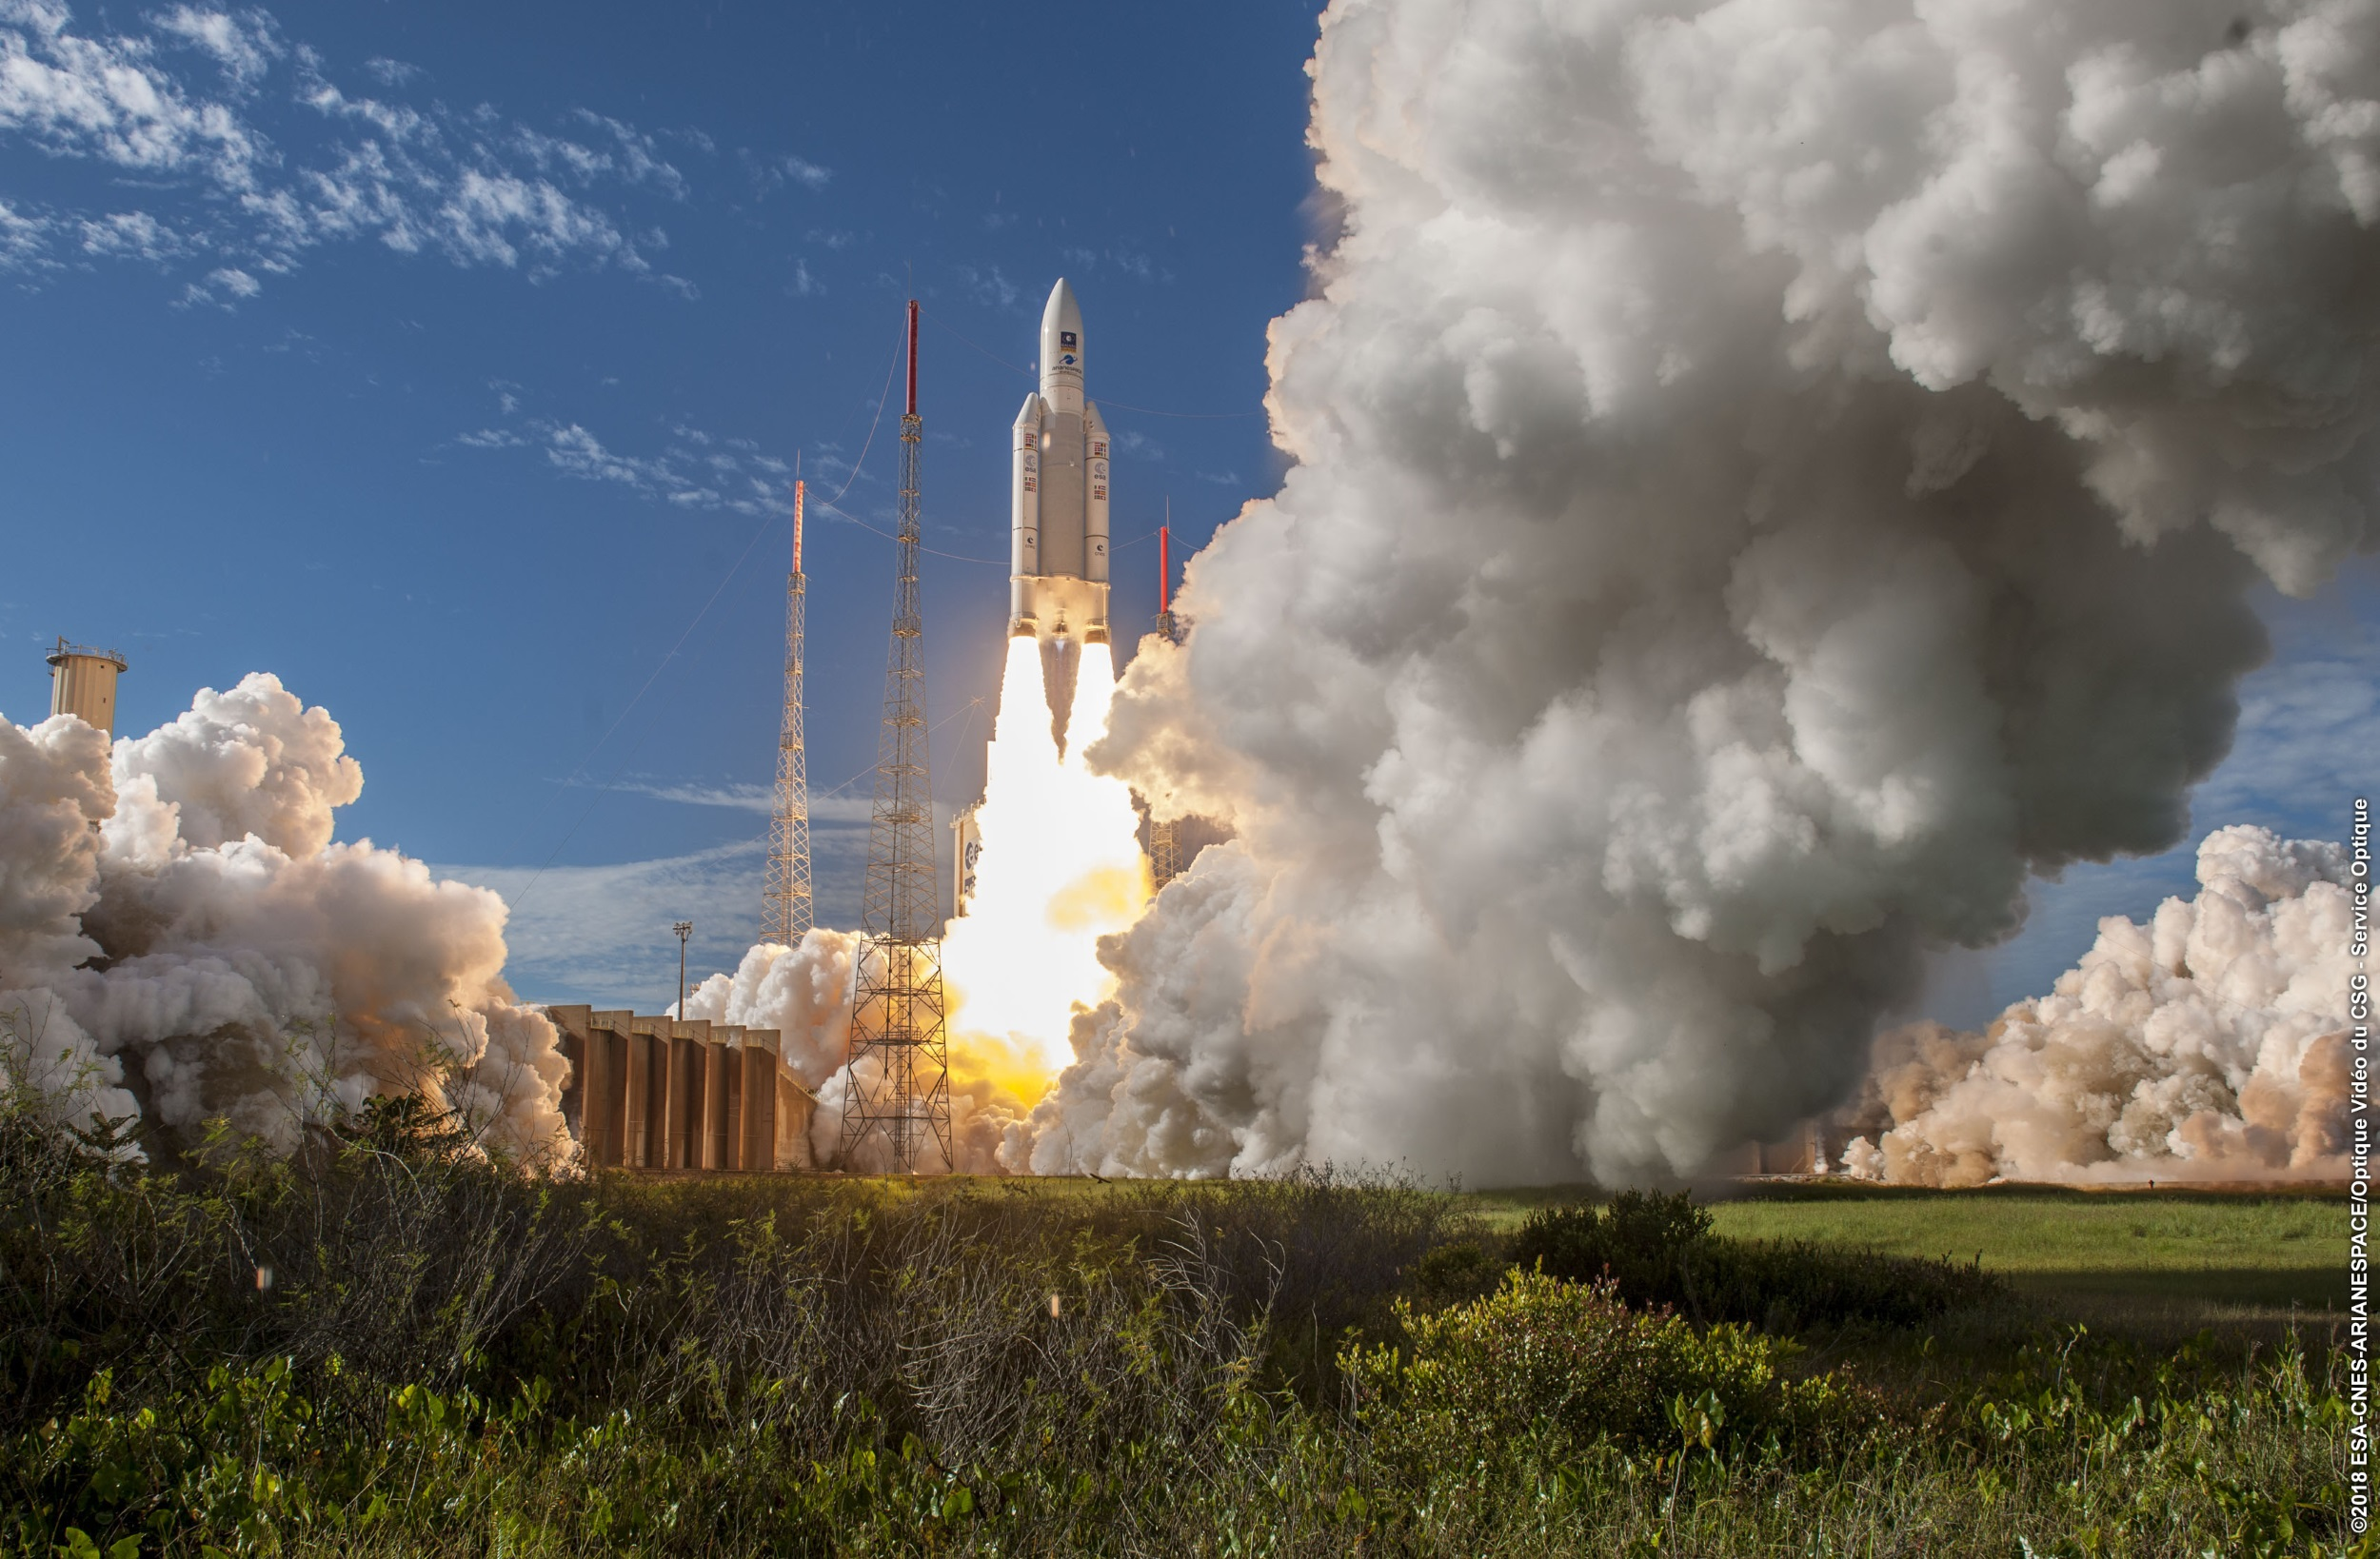 FCC approval of Europe's Galileo satellite signals may give your phone's GPS a boost Galileo launch